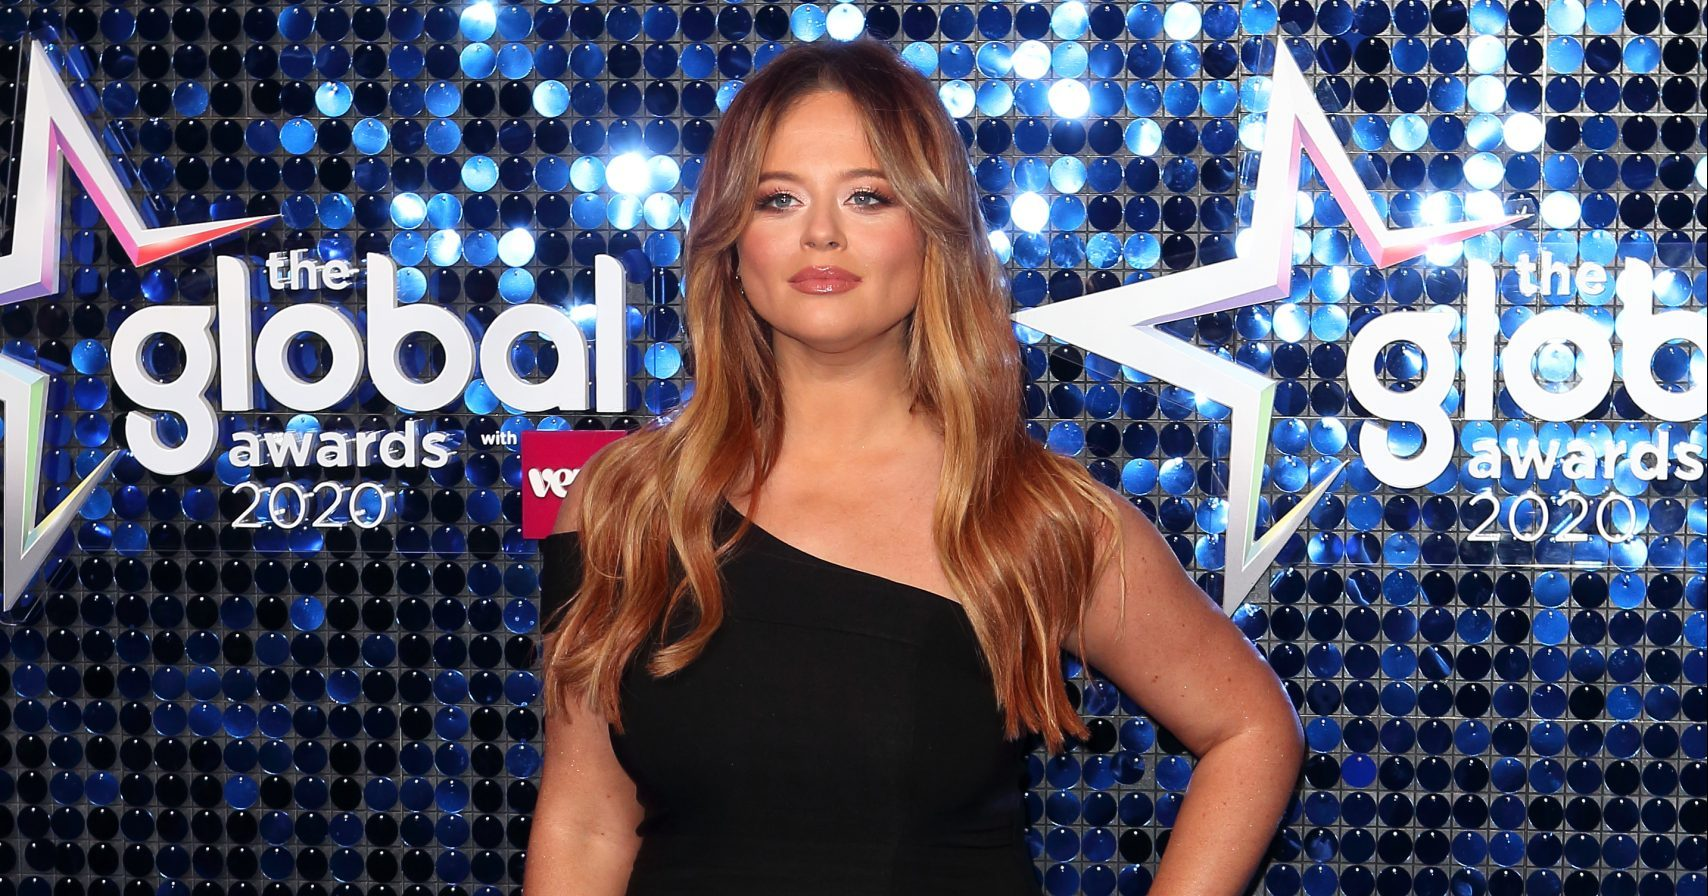 Emily Atack reveals she's lost a stone as she slams cruel troll's weight comment